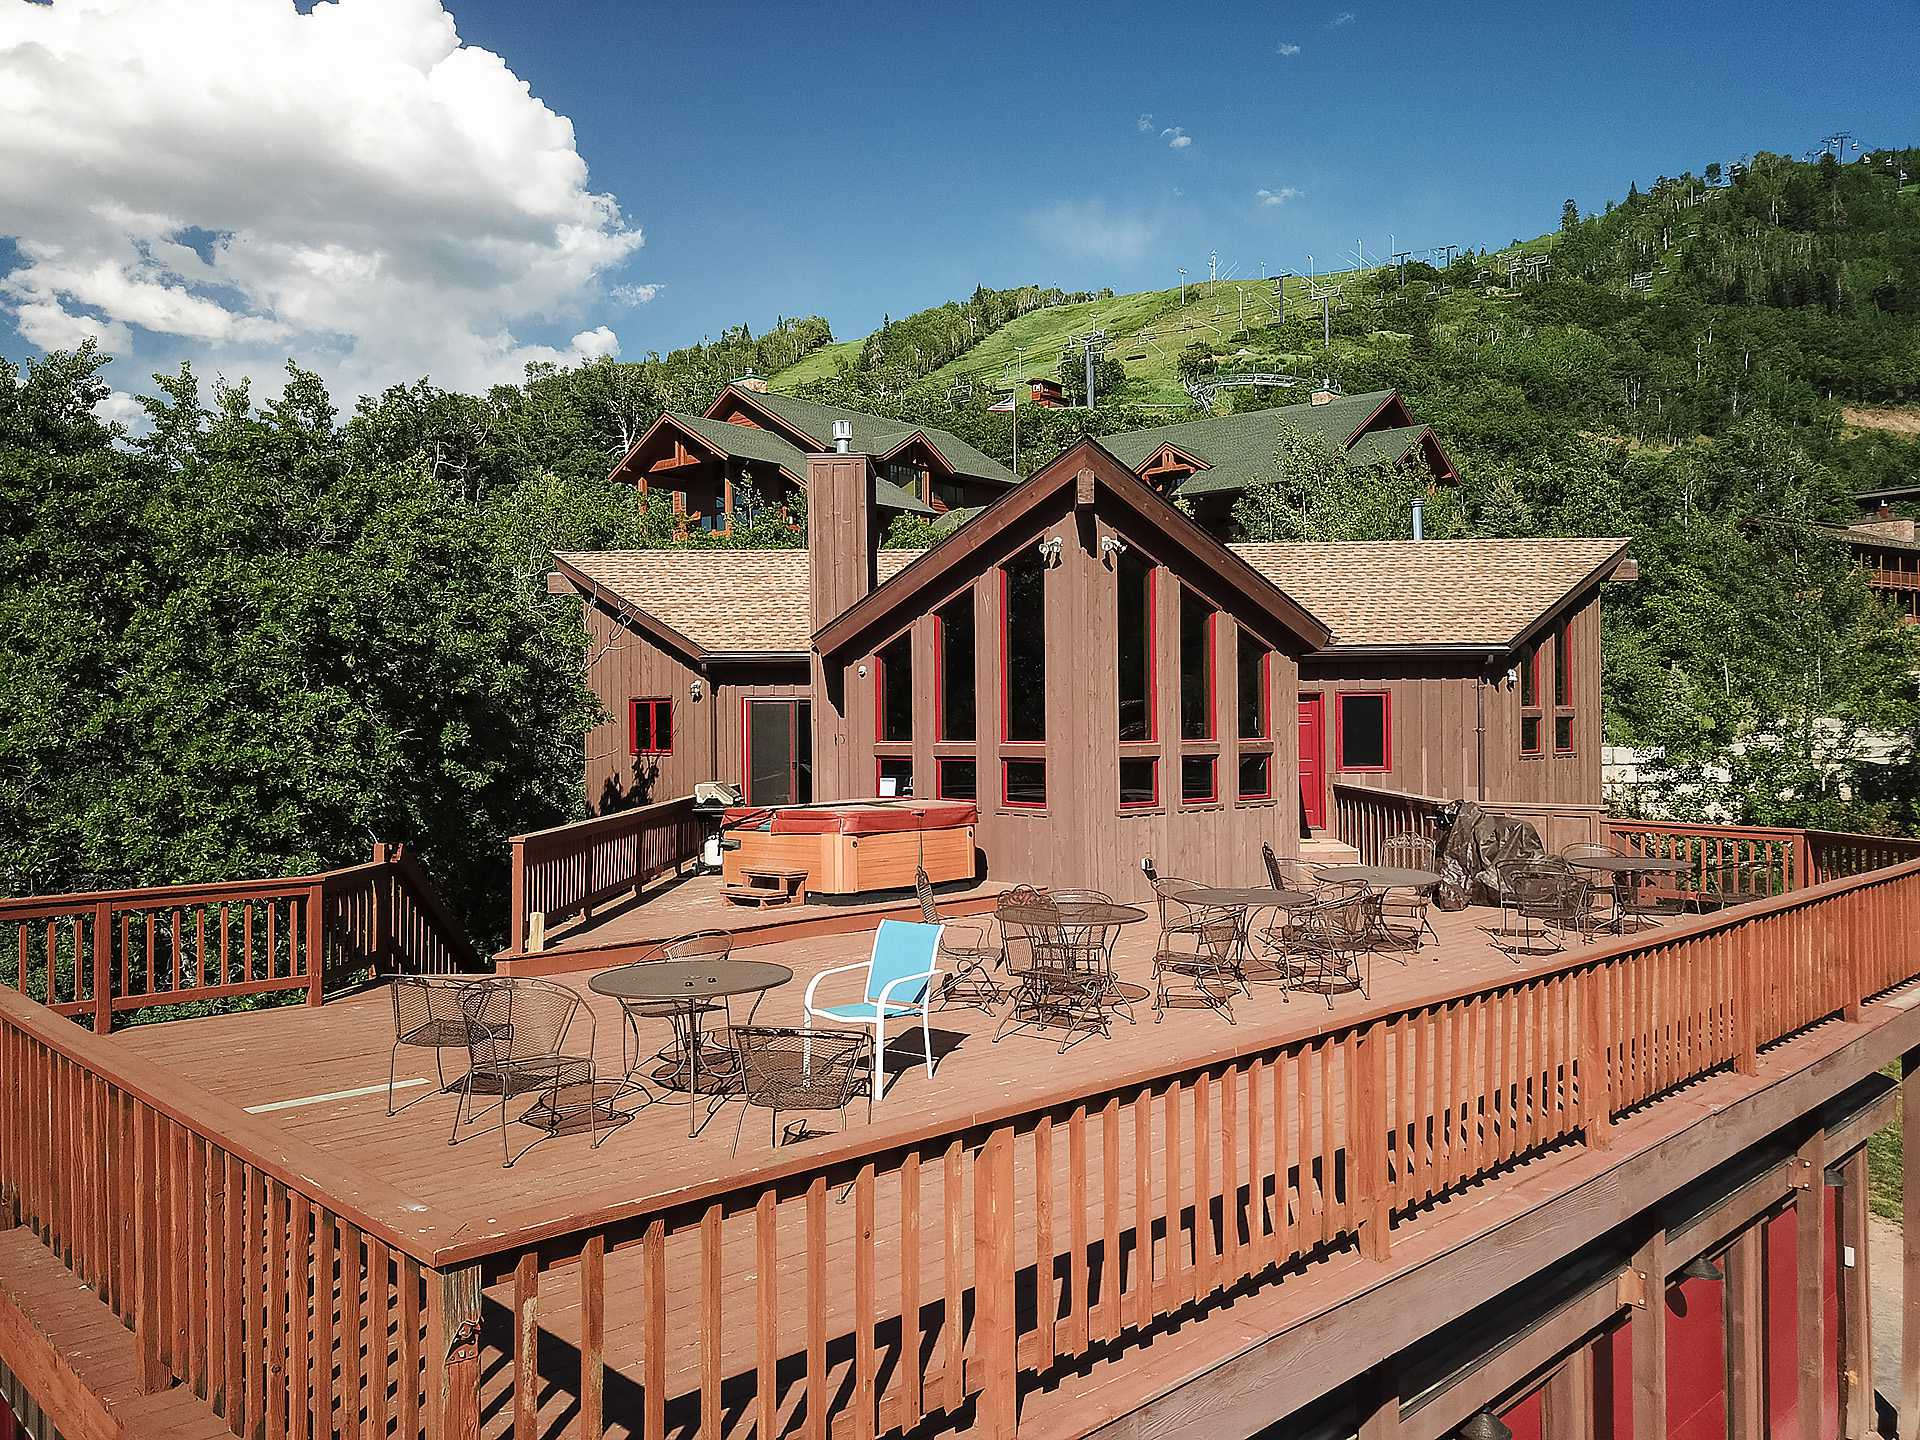 90ST1 - Ski Trail Lodge I